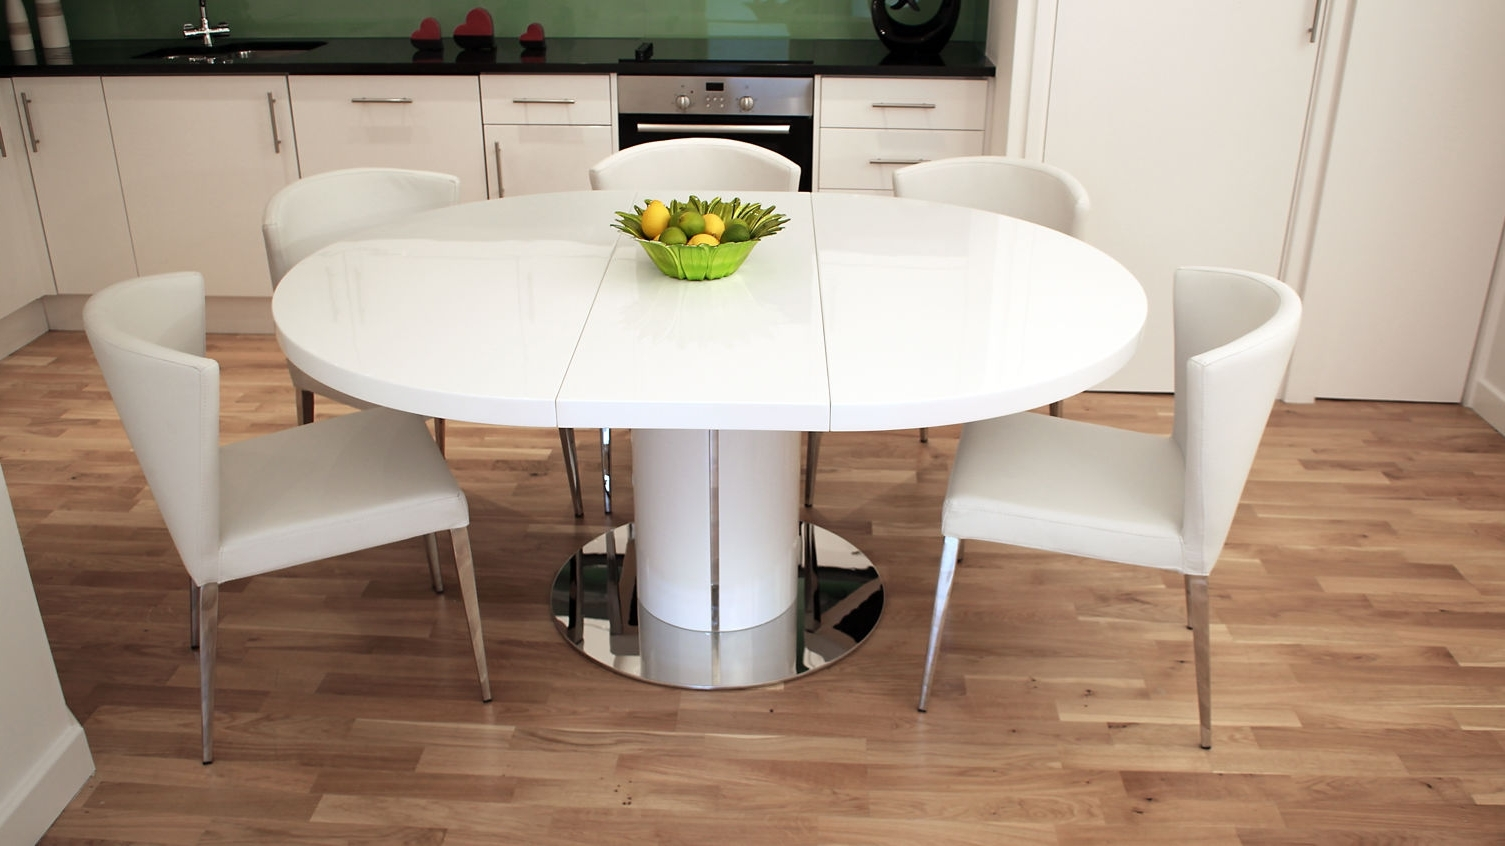 Most Popular Large Outdoor Room Table Dimension Argos And Furniture For Round With Extendable Dining Room Tables And Chairs (View 7 of 25)